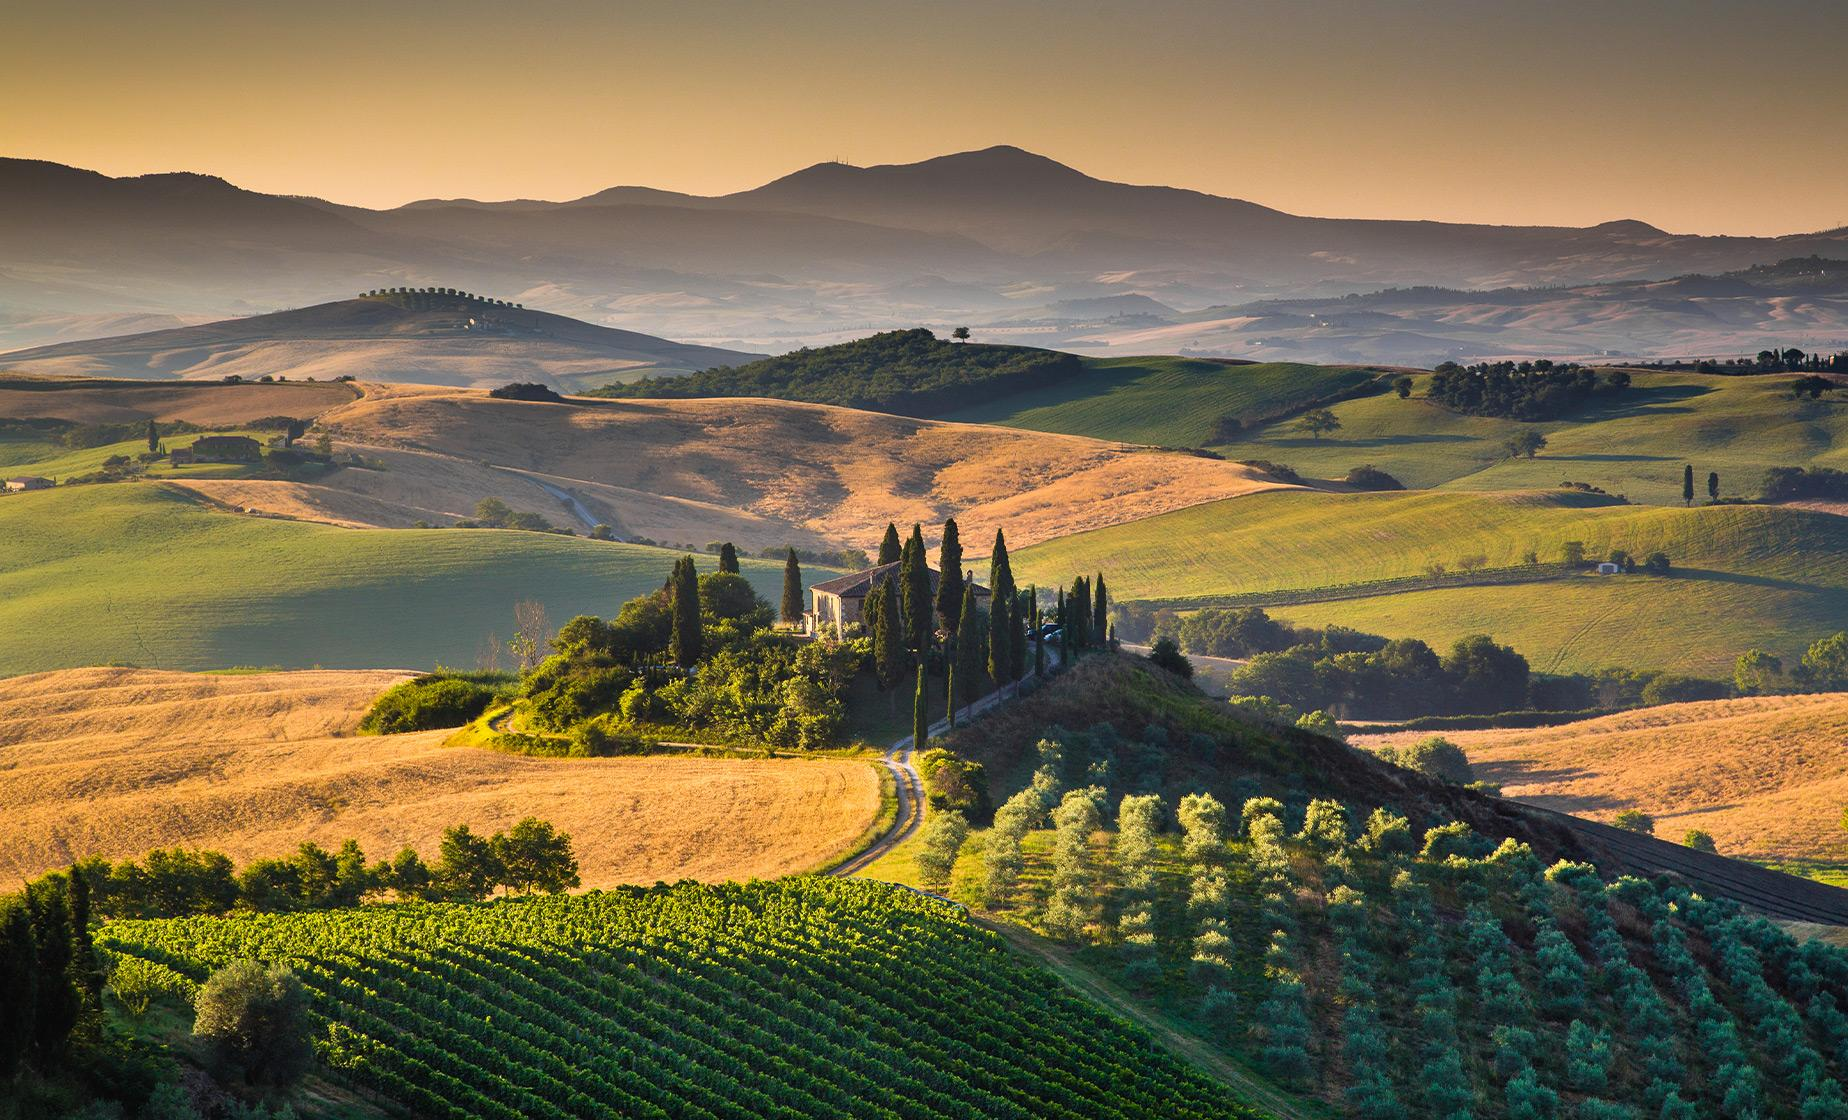 Private Tuscany Village & Wine Tasting Cruise Tour from Livorno